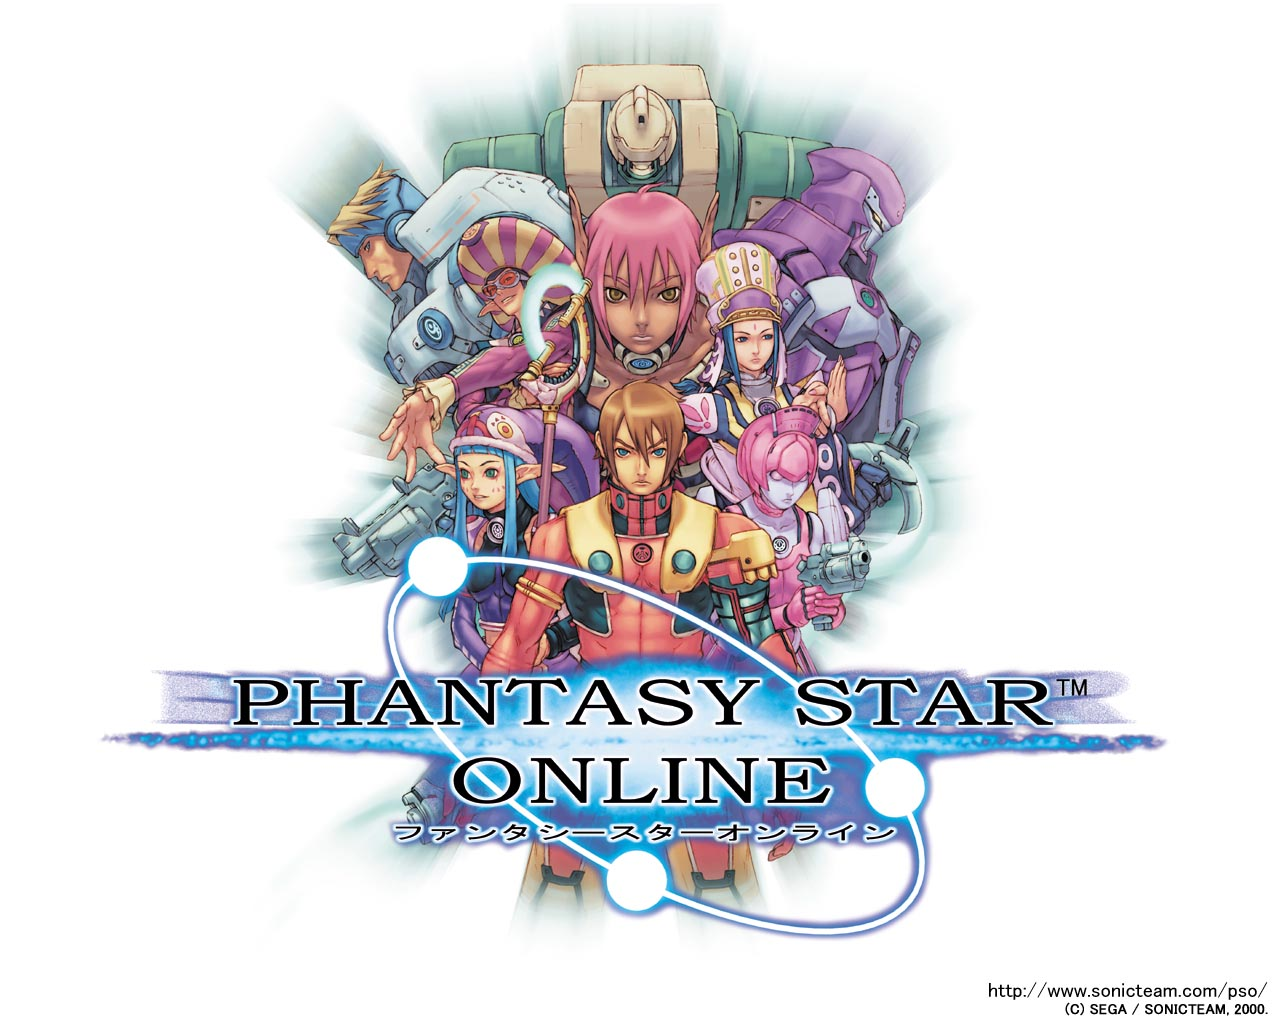 Phantasy Star Online HD Wallpaper